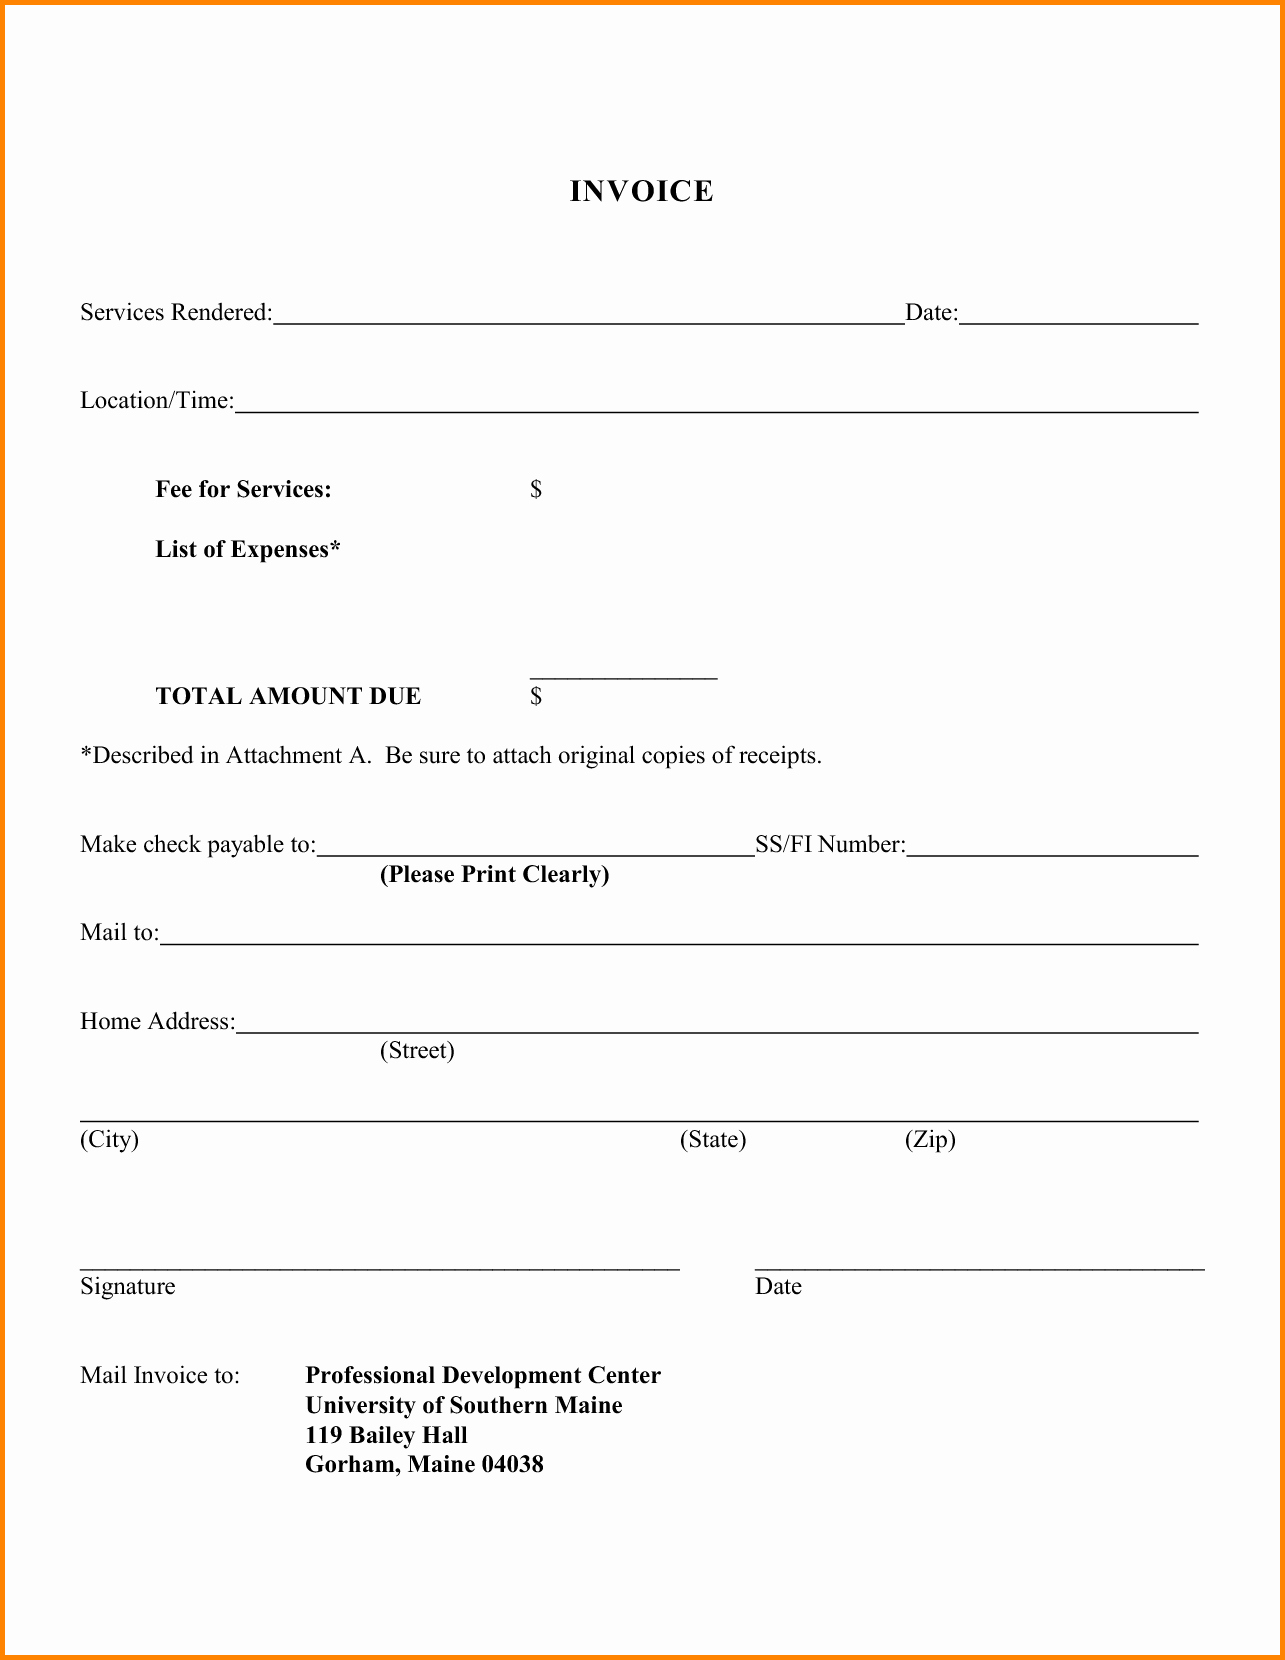 Examples Of Invoices for Services Beautiful 8 Billing Letter for Services Rendered